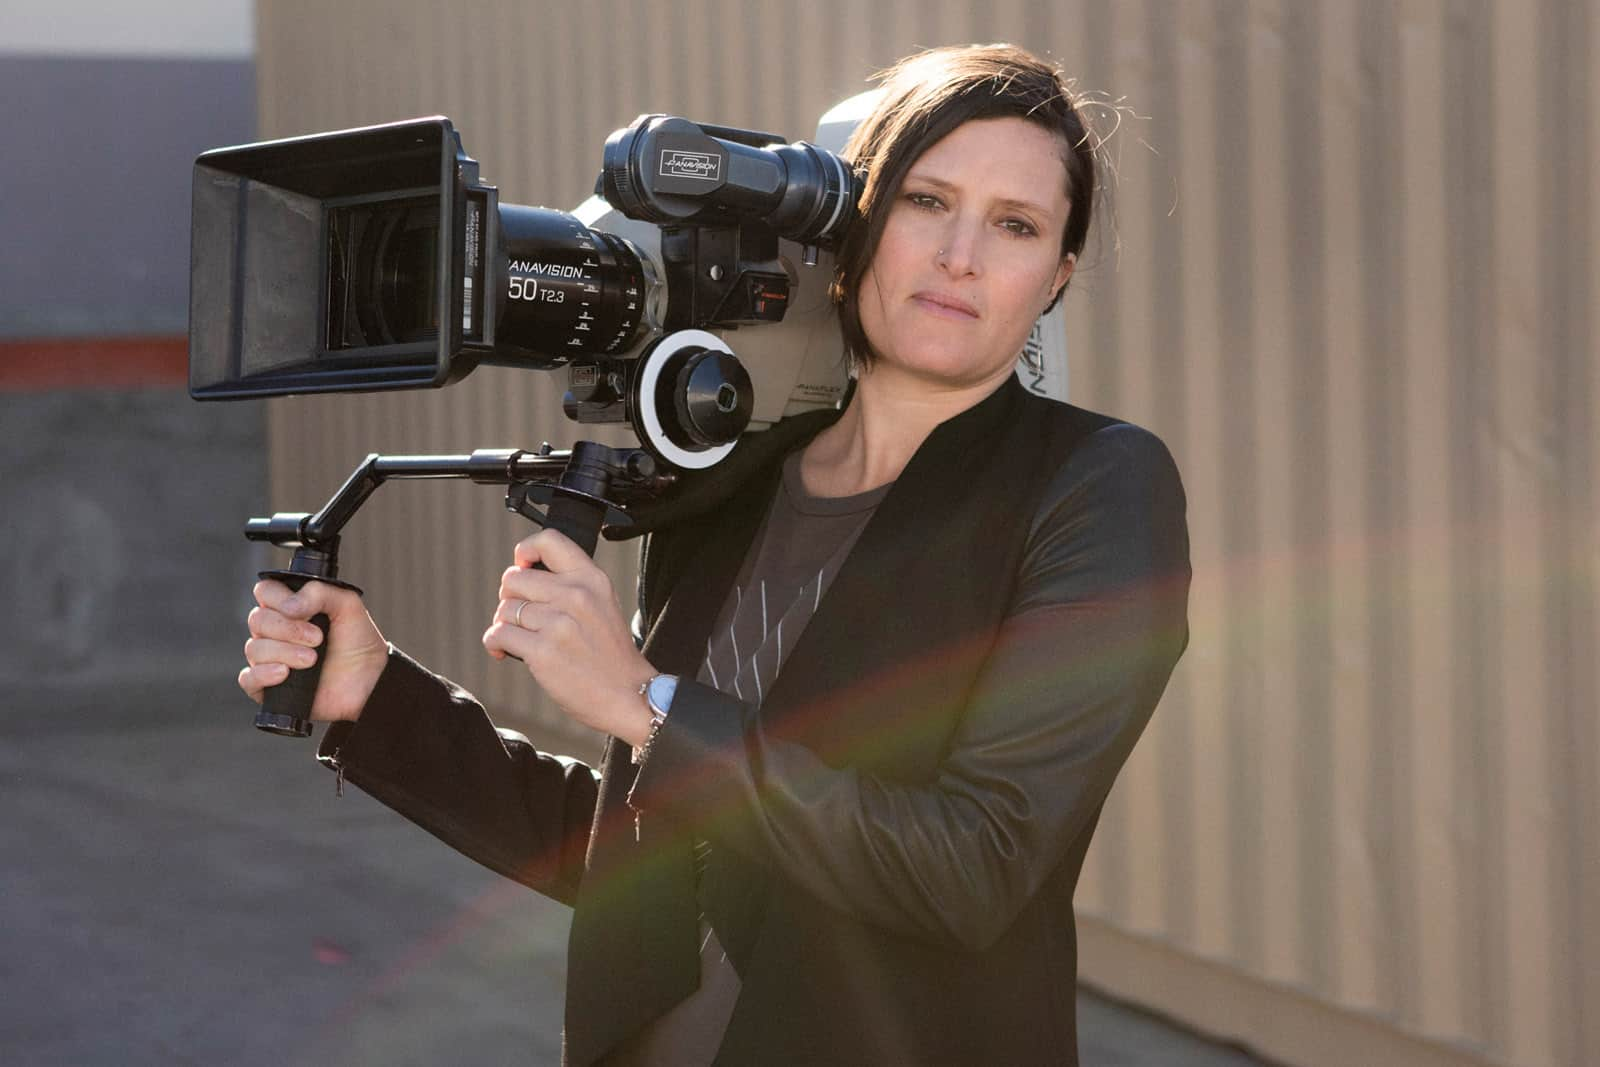 In 2018, Rachel Morrison ASC became the first woman ever to be nominated for an Academy Award for Cinematography for her work on <em>Mudbound</em>